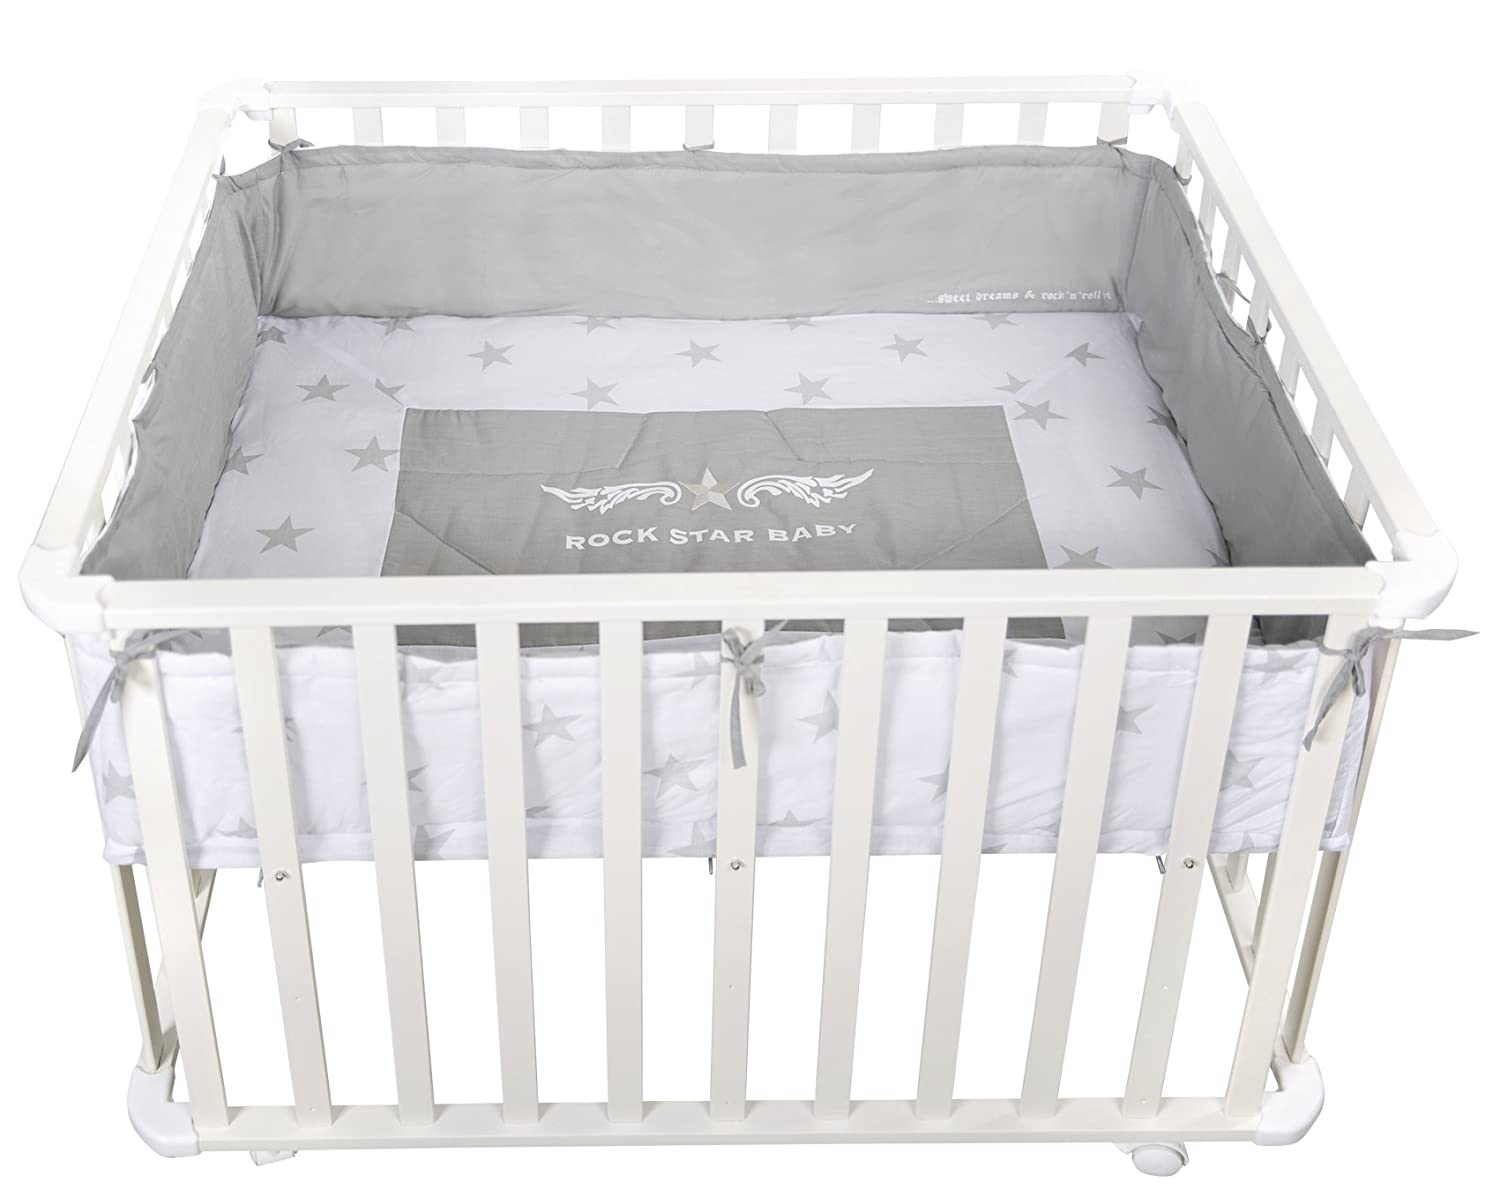 New Roba Rock Star Baby Hexagonal Wooden Playpen White And Grey Baby Gear